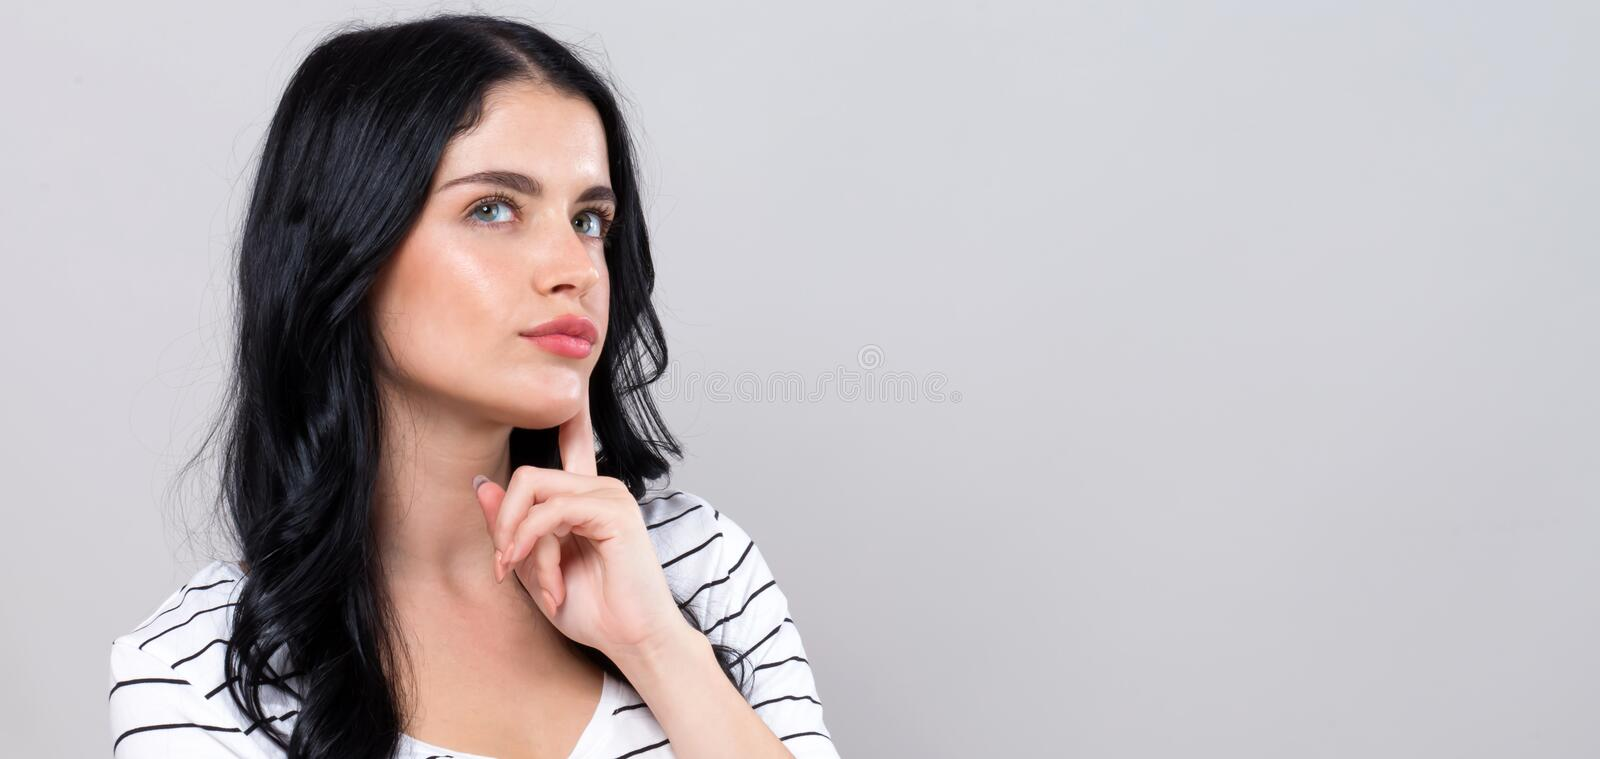 Young woman in a thoughtful pose royalty free stock photos